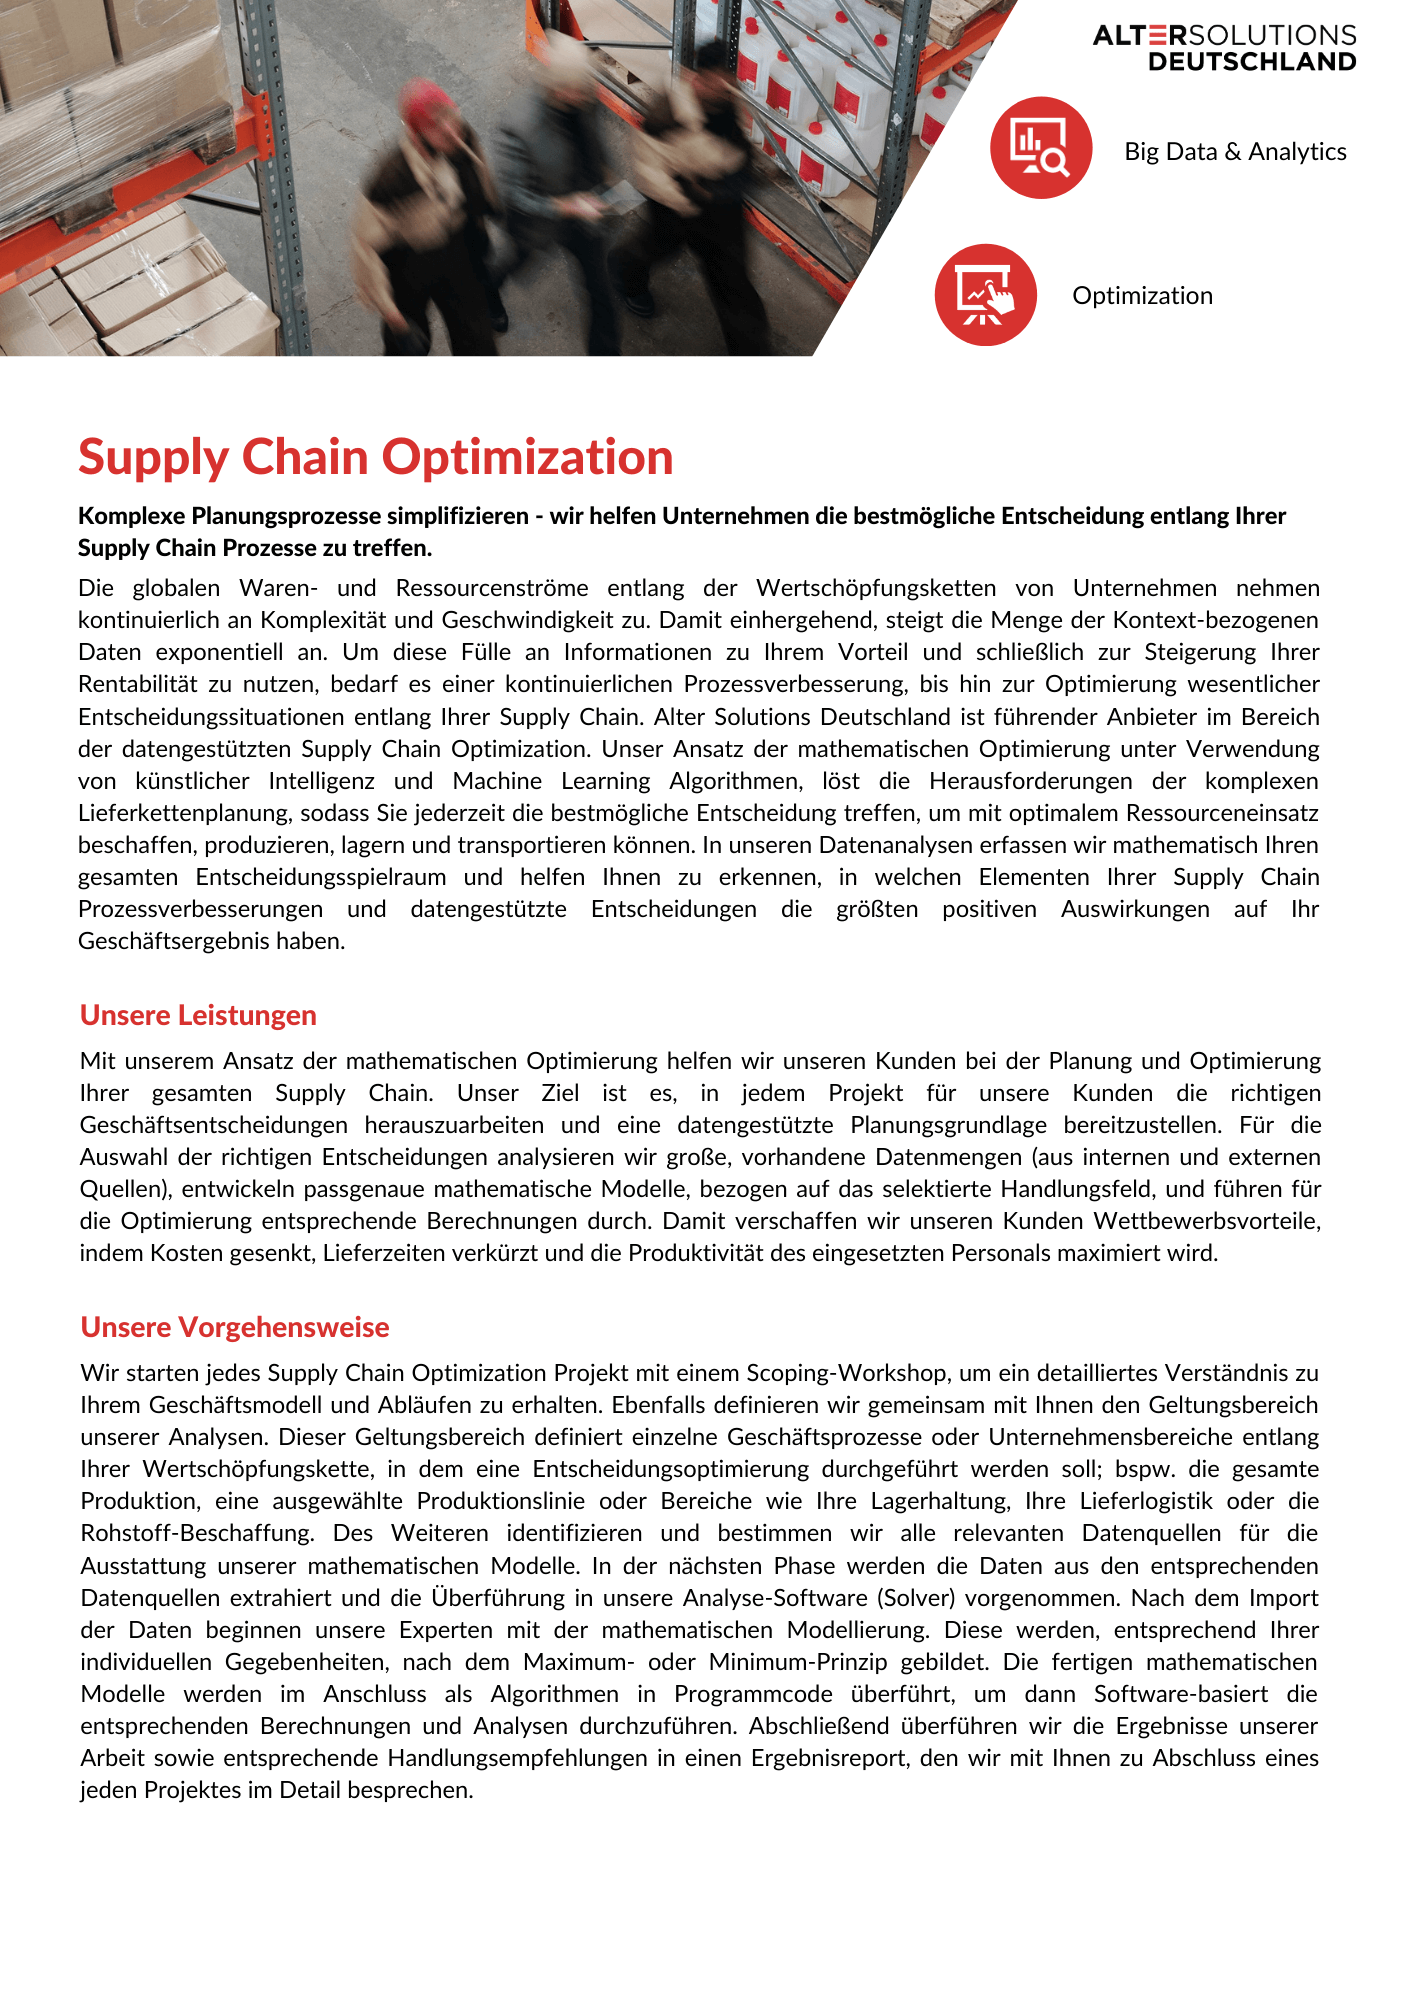 Supply Chain Optimization Broschüre